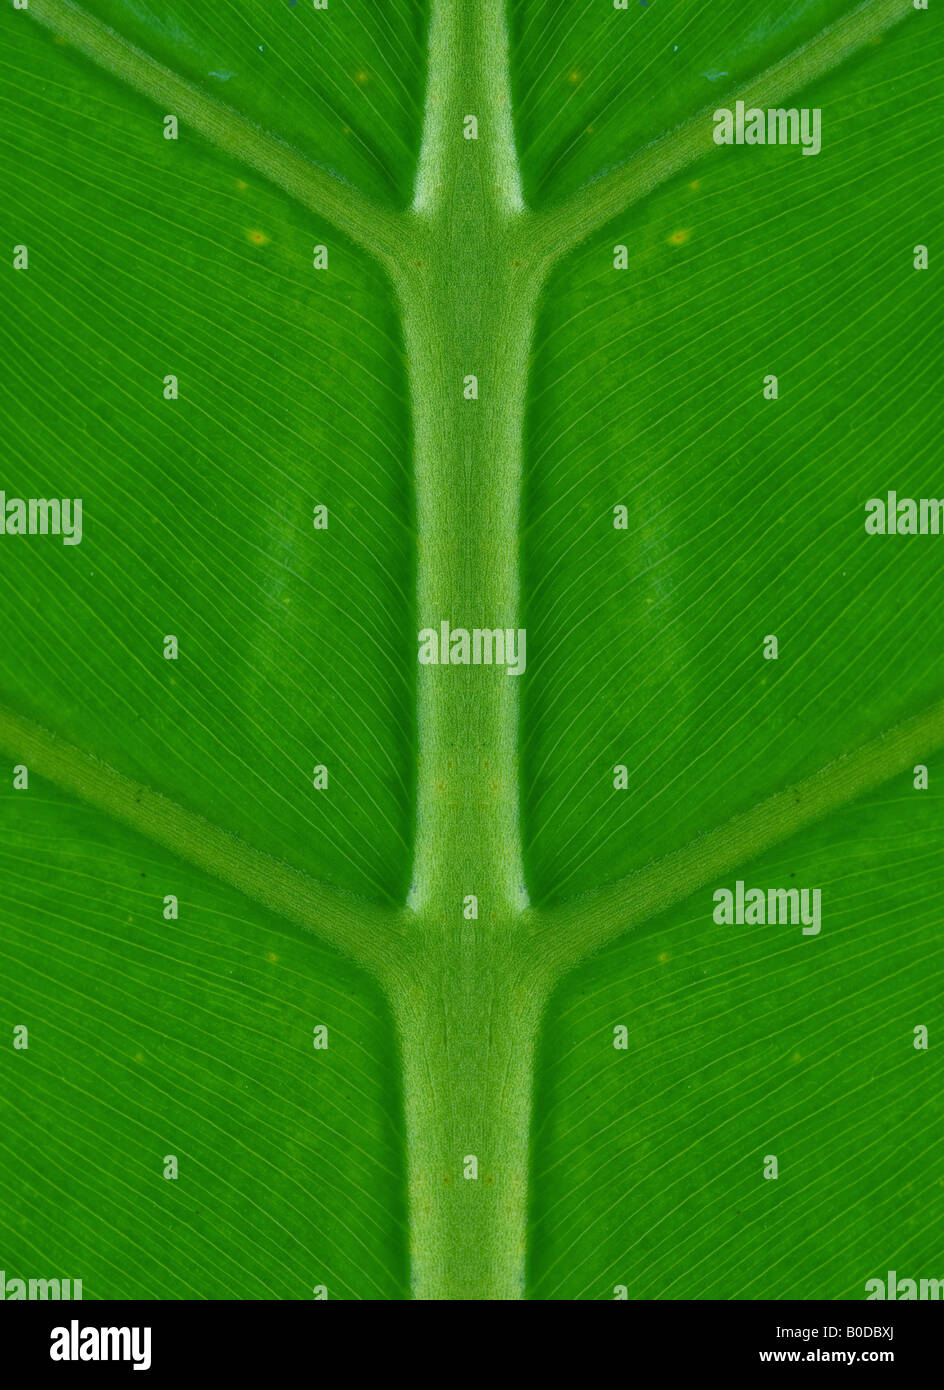 perfectly symmetrical green palm leaf nature background - Stock Image